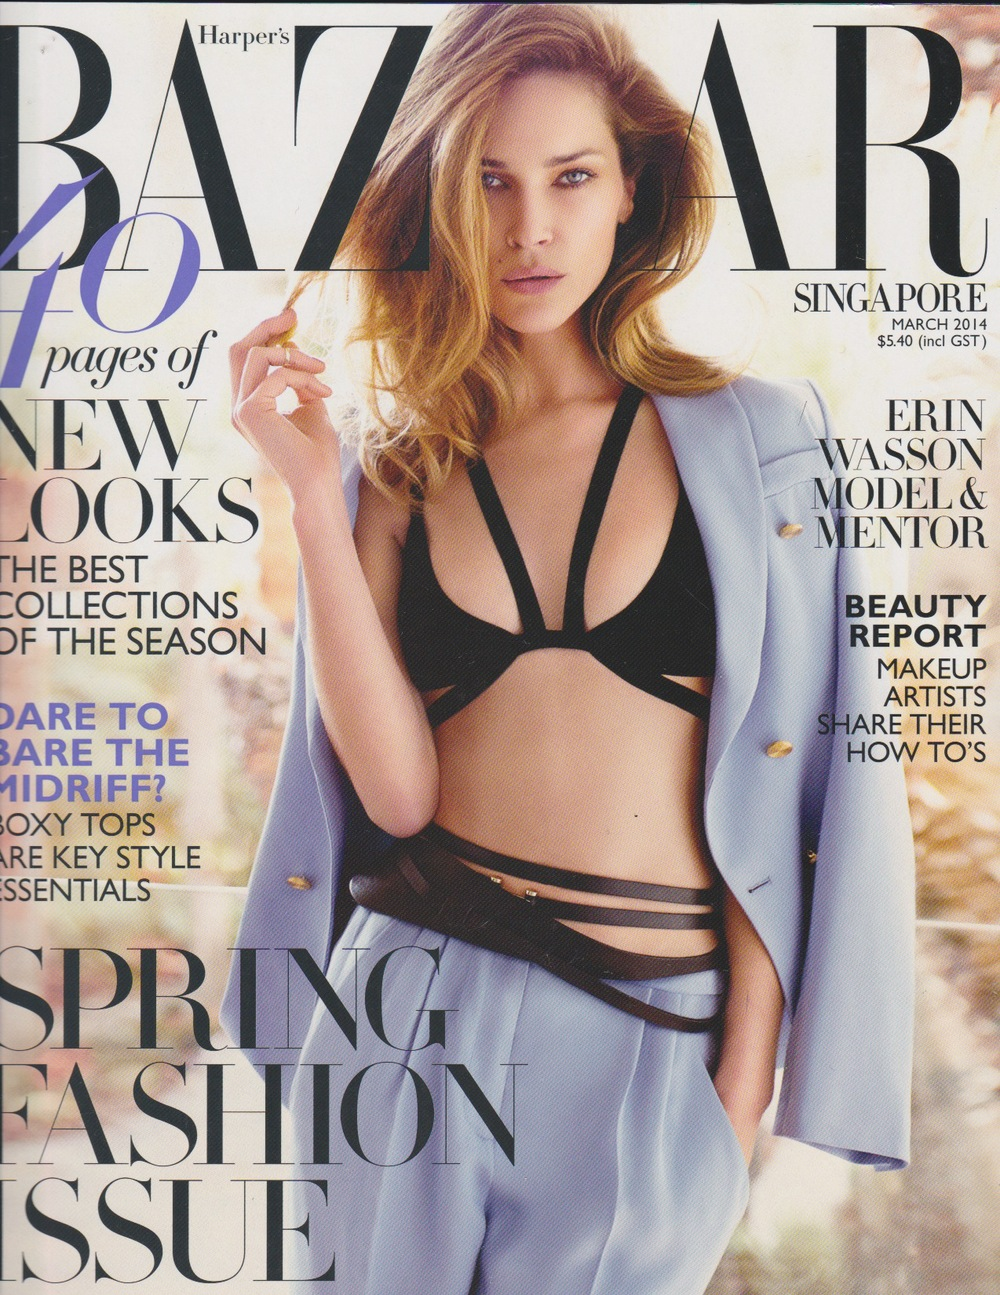 erin wasson      harper's bazaar singapore   march 2014